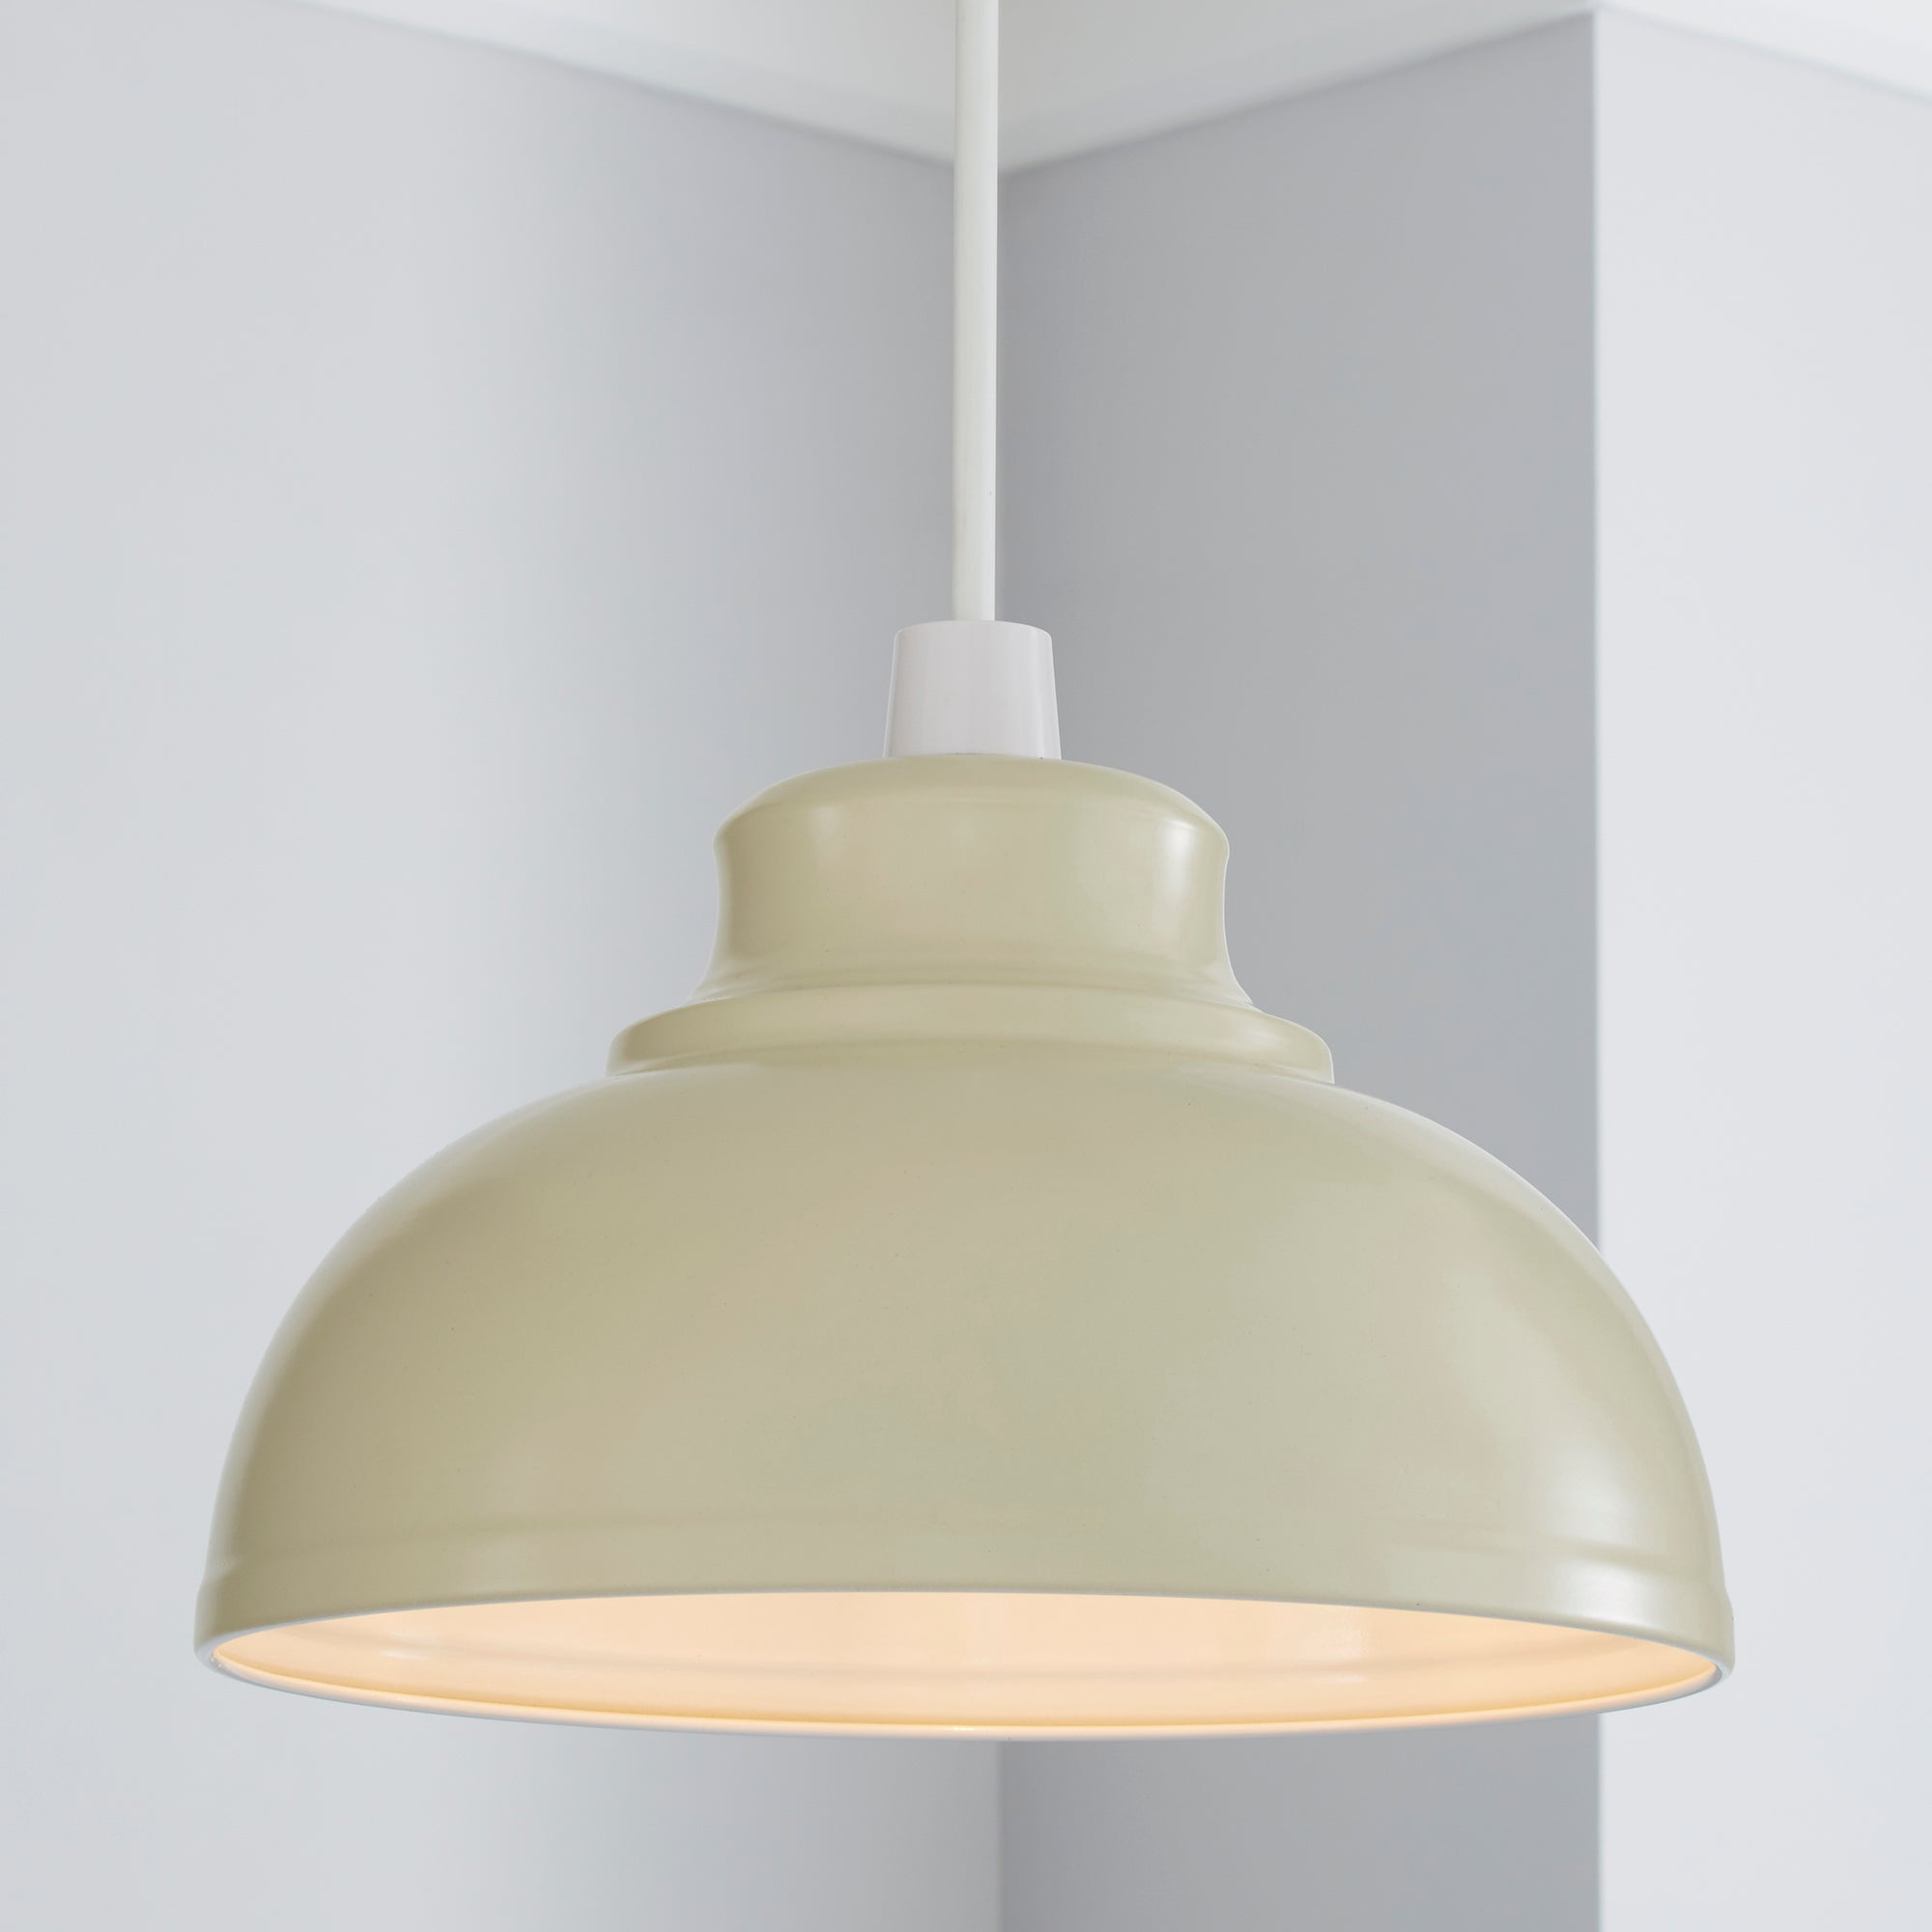 Dunelm Wall Lamp Shades : 100+ [ Table Lamps Uk Dunelm ] 227 Best Lighting Images On Pinterest Table Lamp Desks And Soft ...